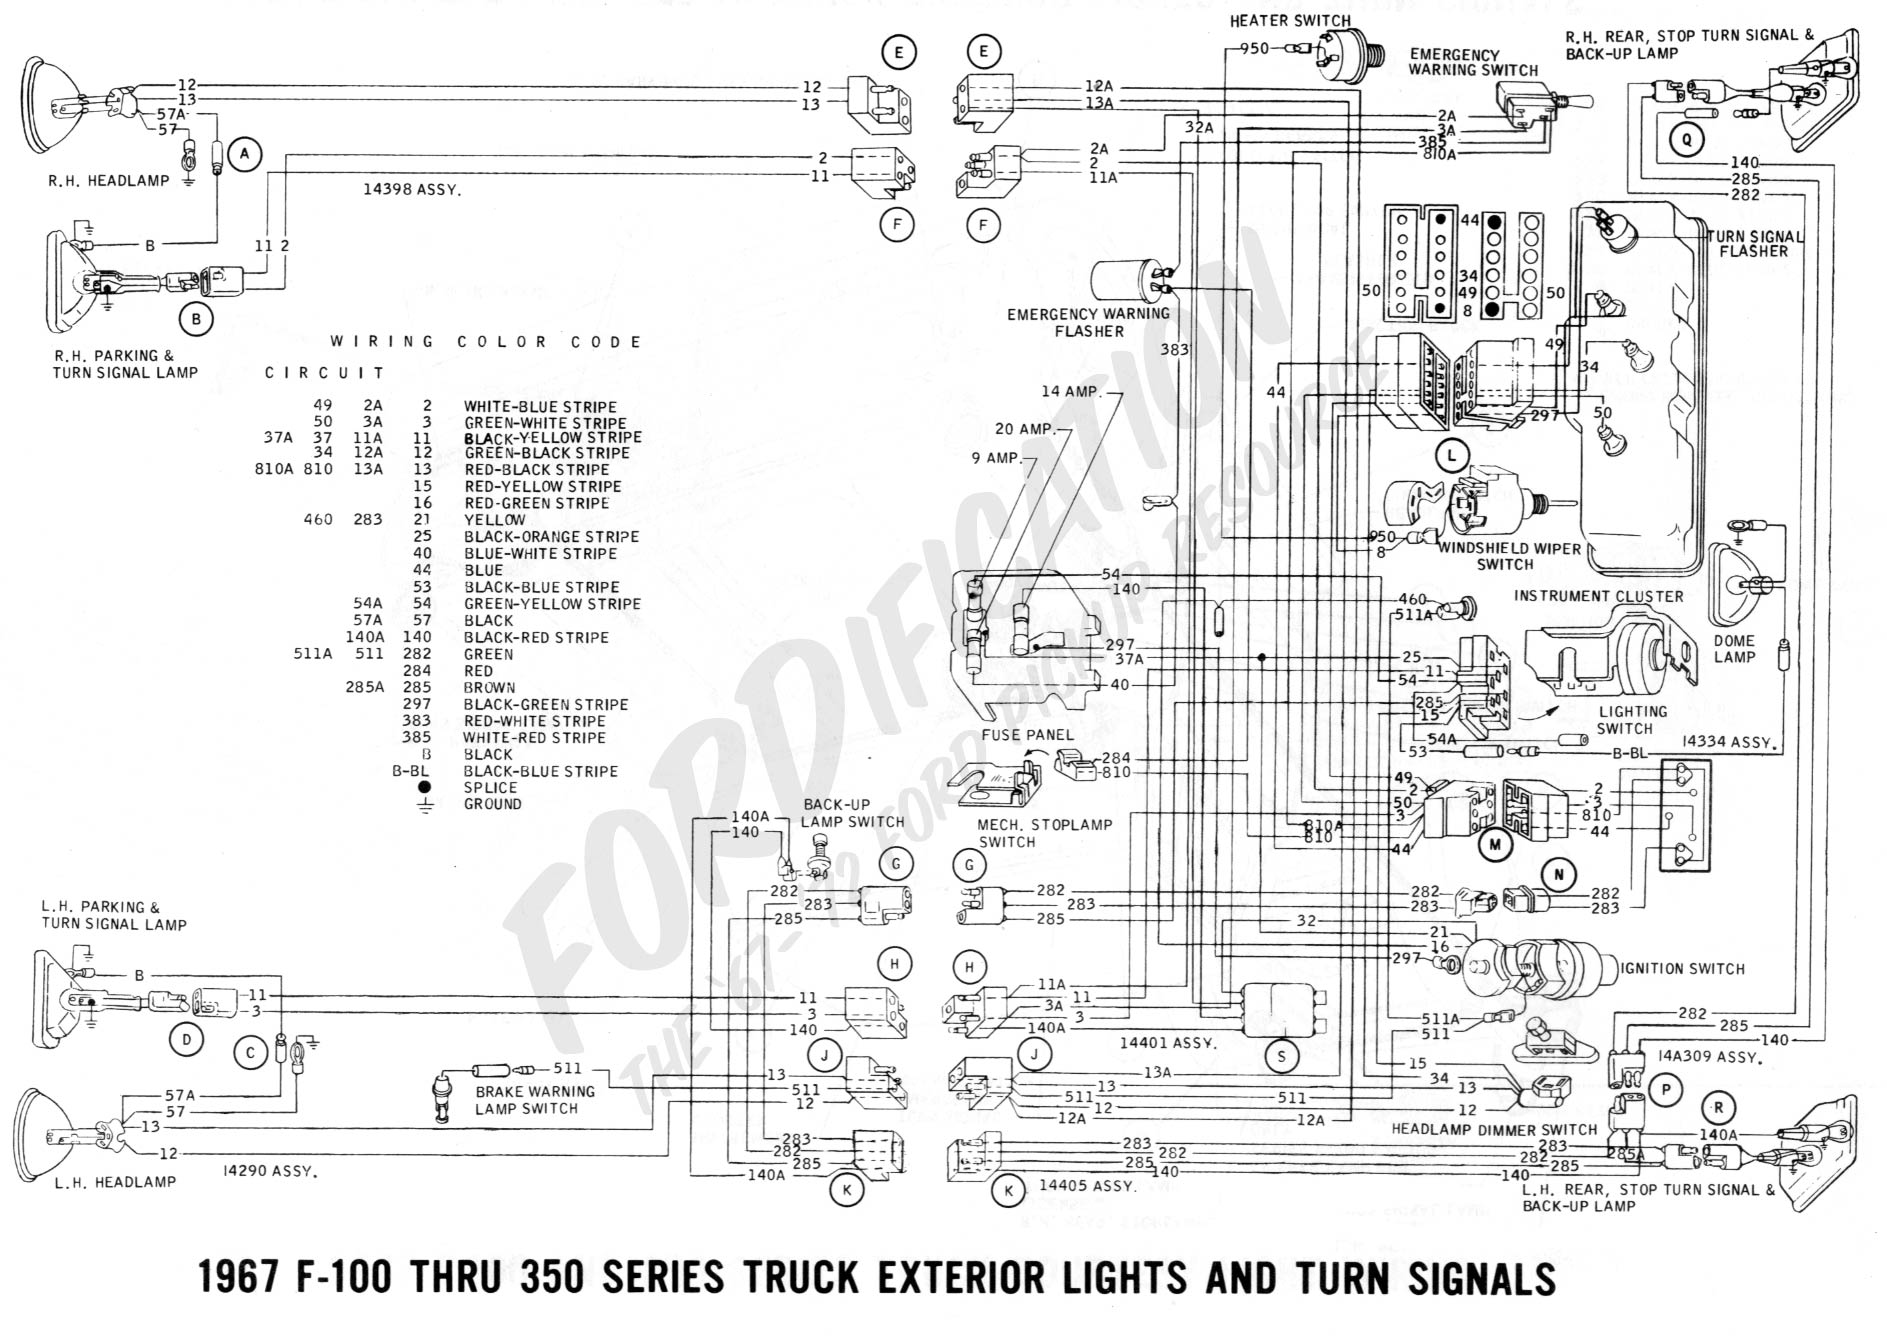 Ford F 150 Wiring Diagram Archive Of Automotive 2010 F150 Diagrams 2006 Truck Simple Rh David Huggett Co Uk 2015 Trailer Plug